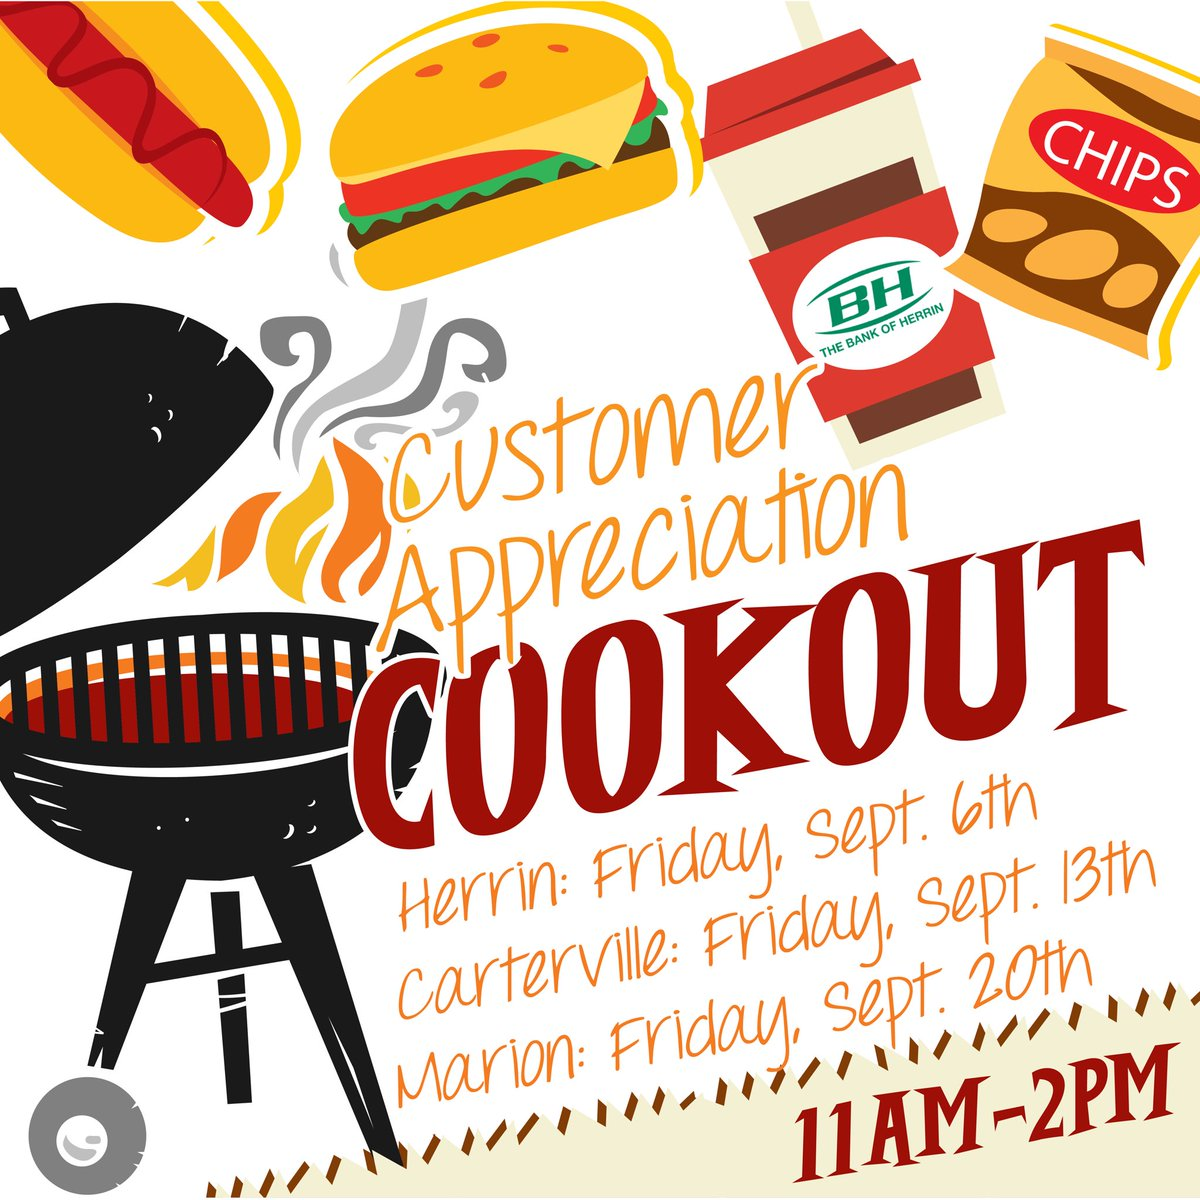 Cookout clipart appreciation. Bank of herrin on